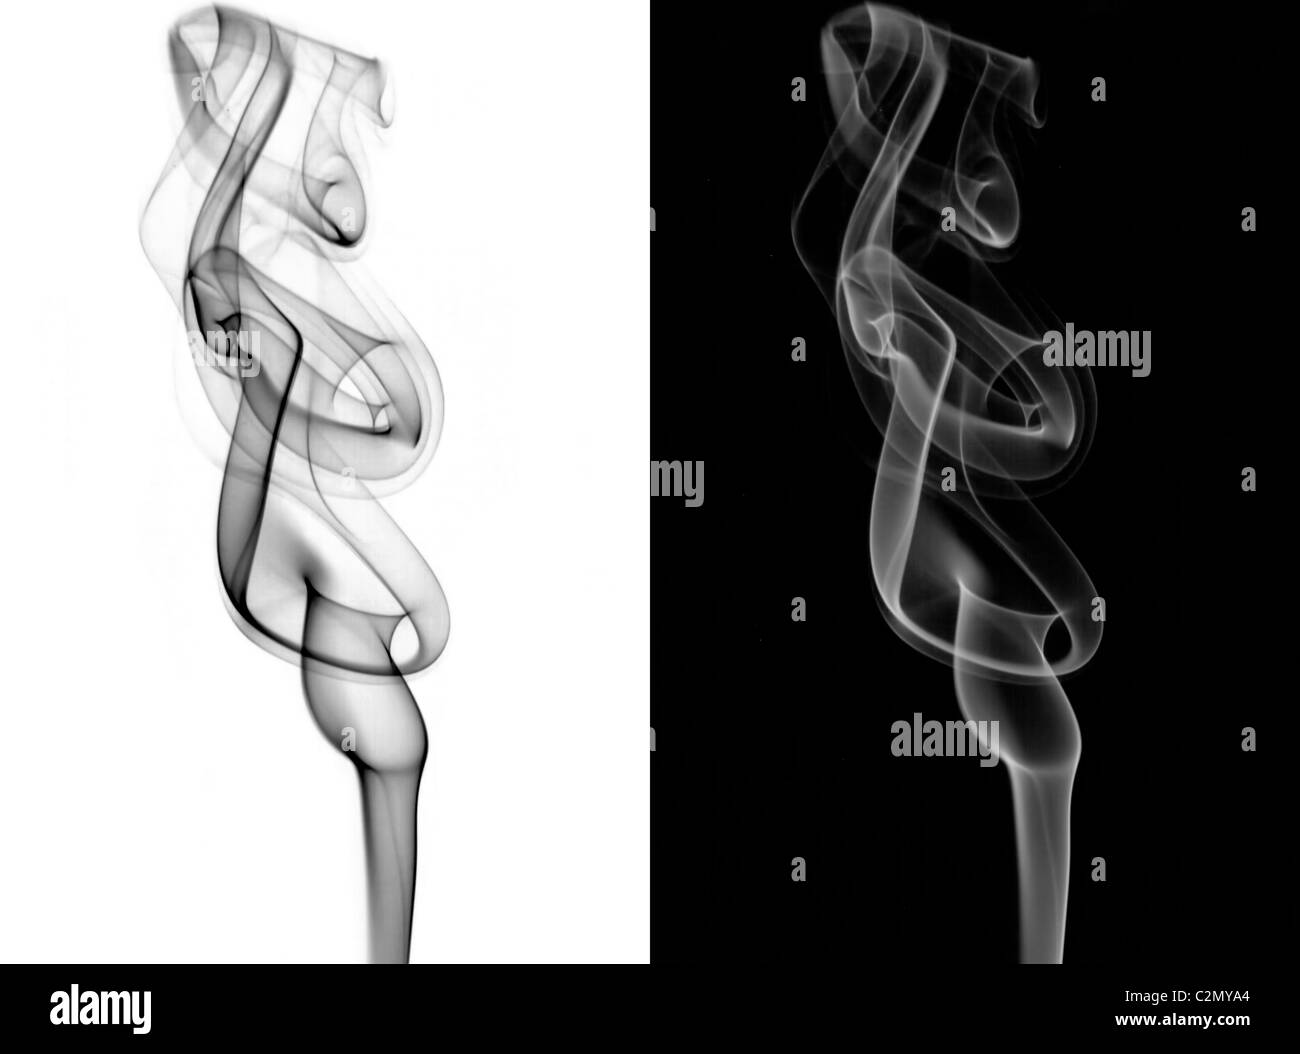 Smoke trails gelled with different colored lights - Stock Image